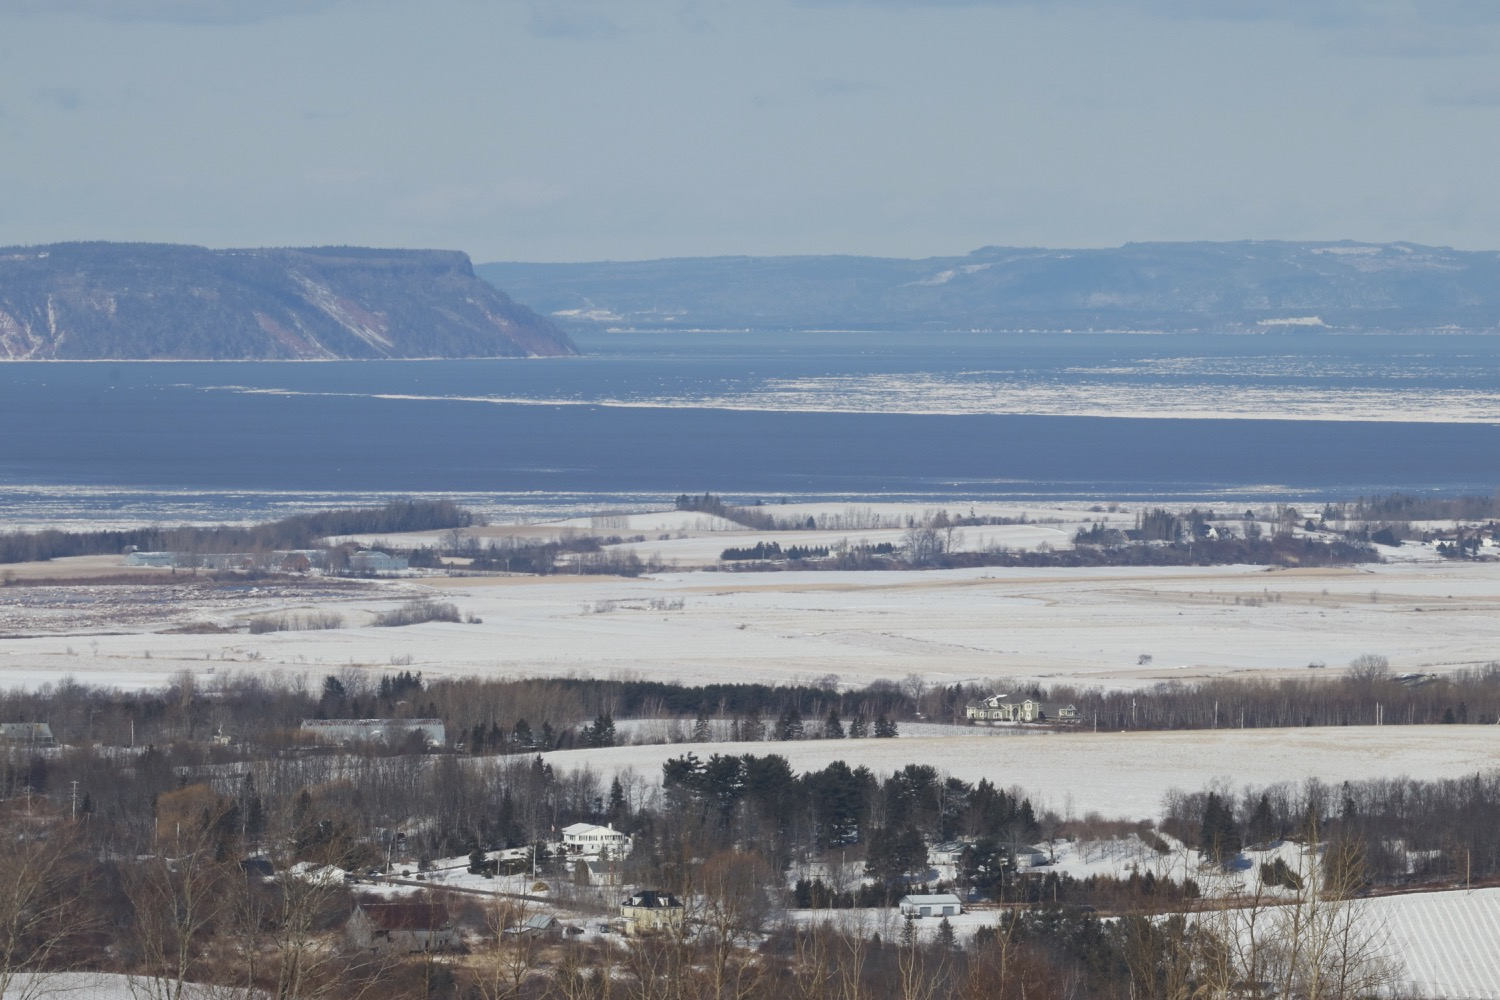 Reflections on the tourism we want for this region of Nova Scotia  ( Cape Blomidon, Bay of Fundy. View west over the Annapolis Valley)